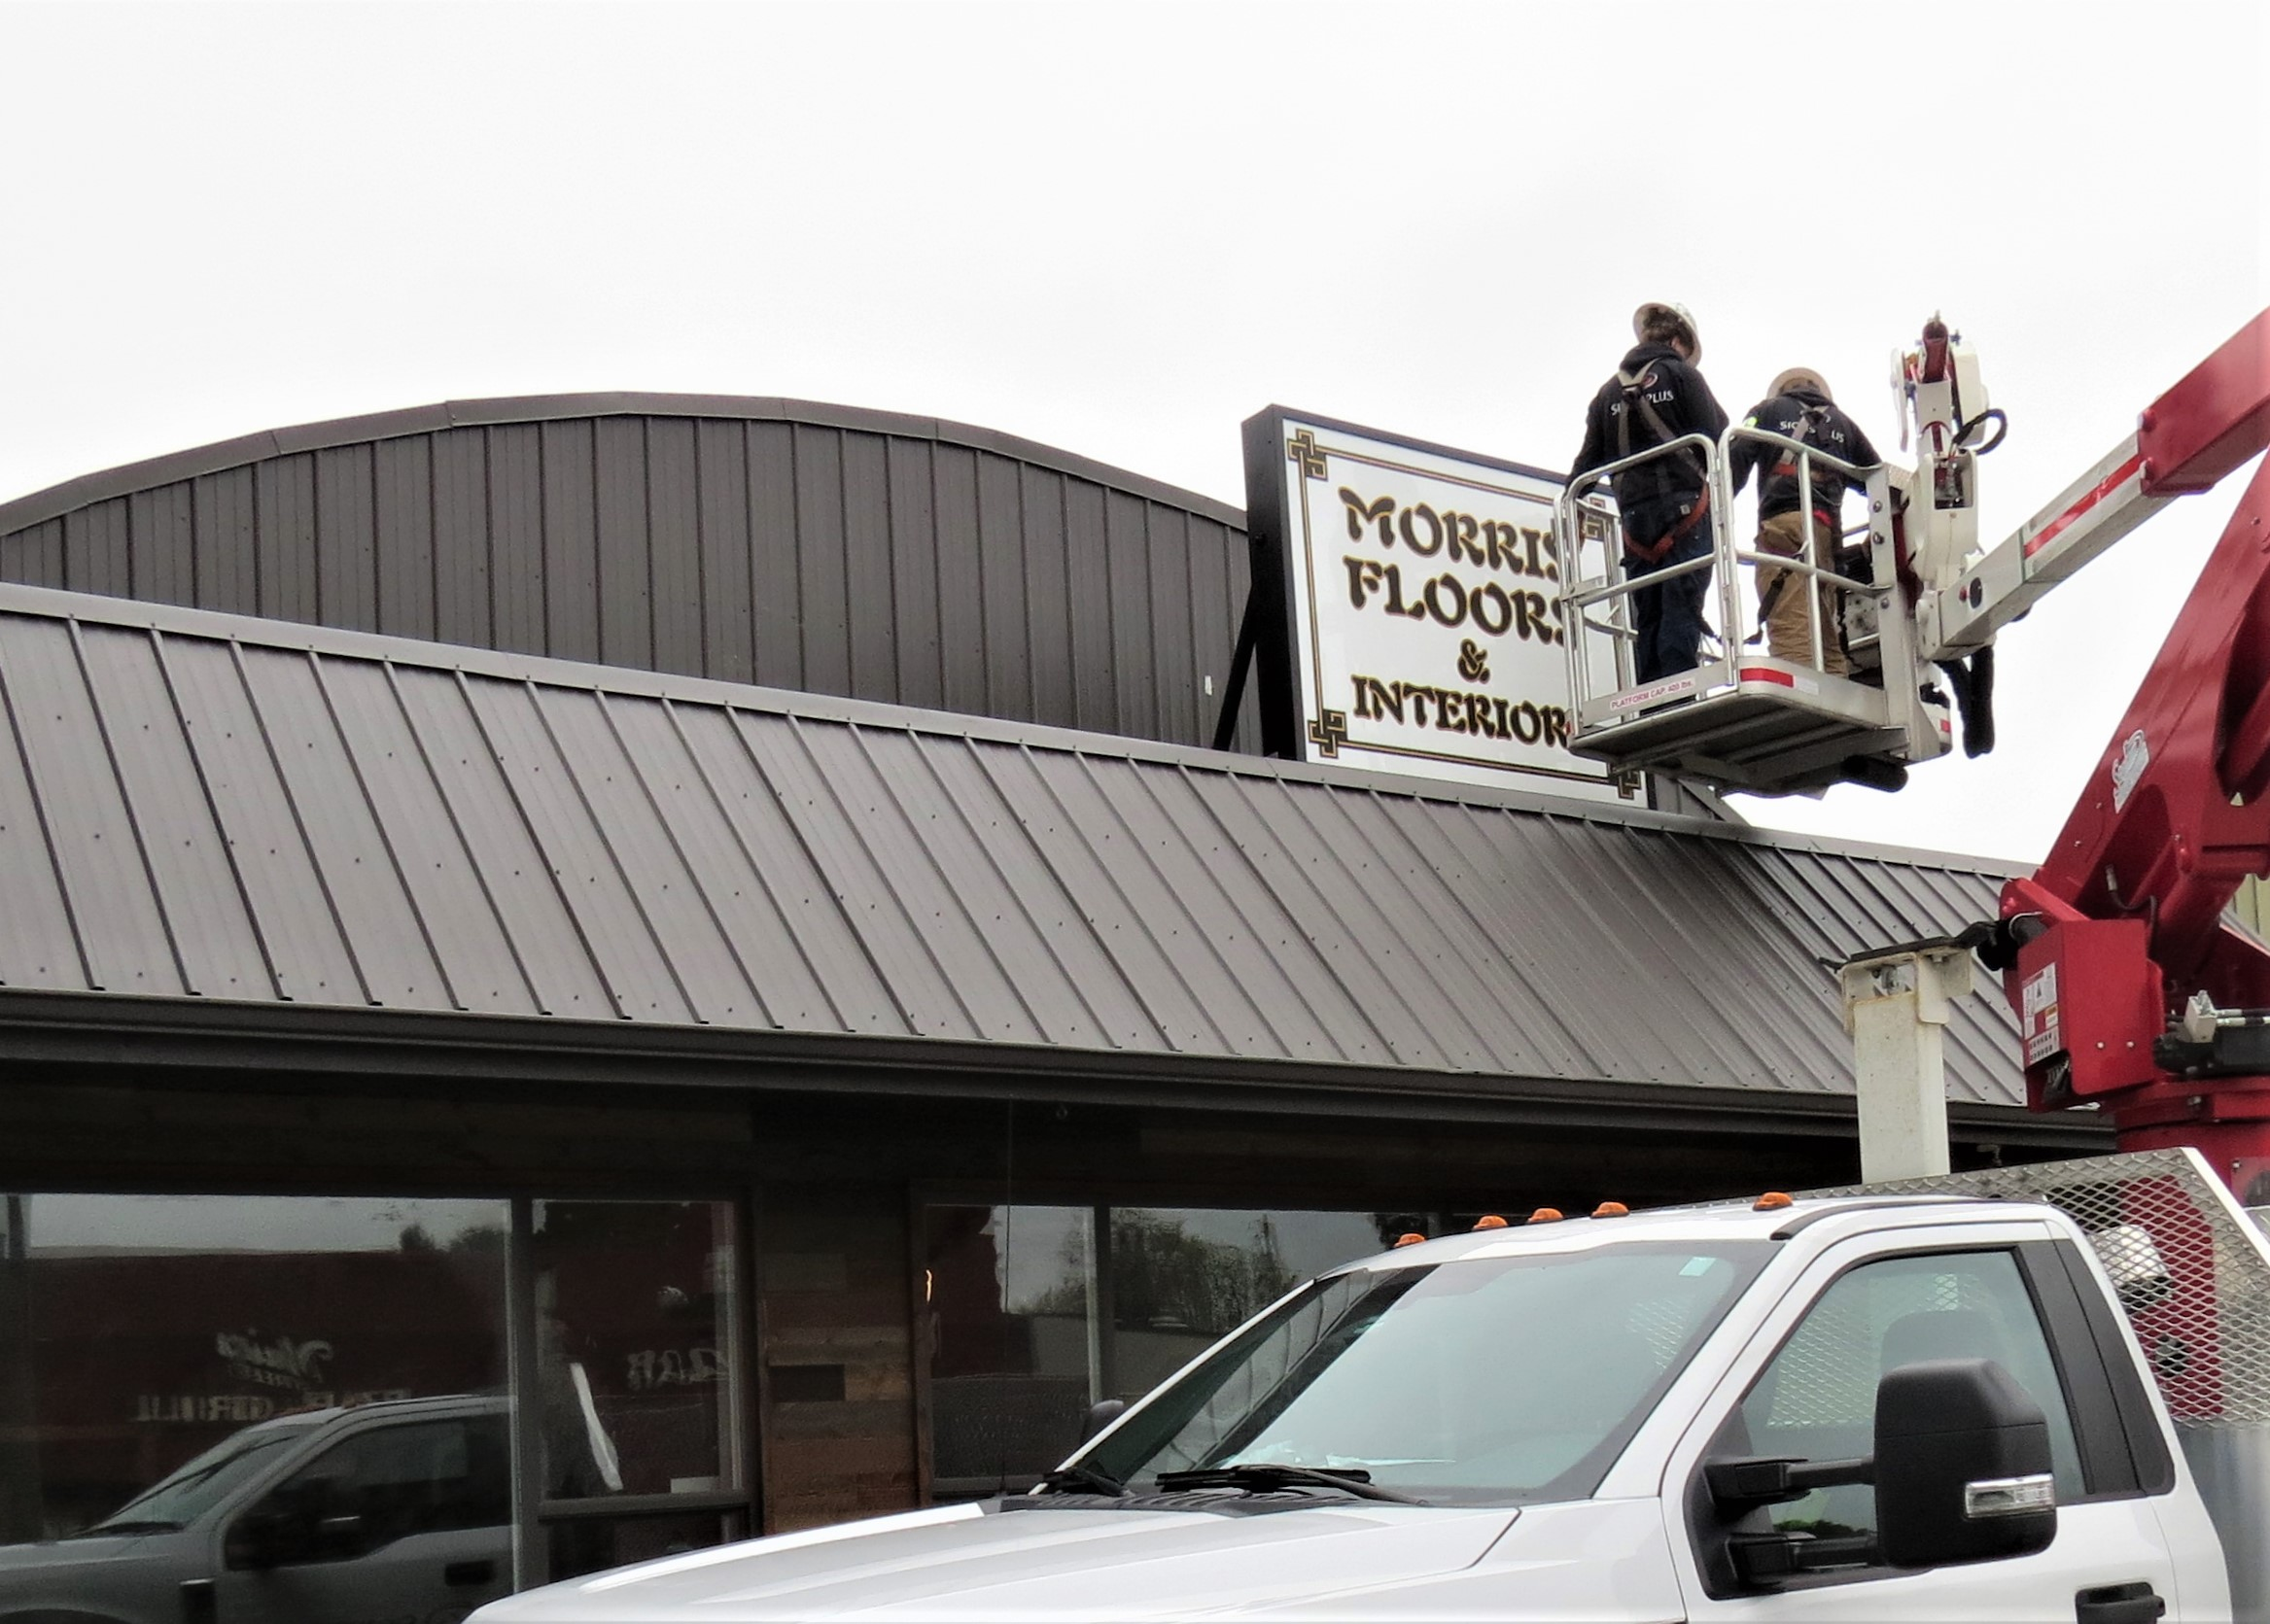 The Morris Floors & Interiors sign gets put in place at the company's new Ferndale location at 2002 Main Street (April 19, 2019). Photo: My Ferndale News